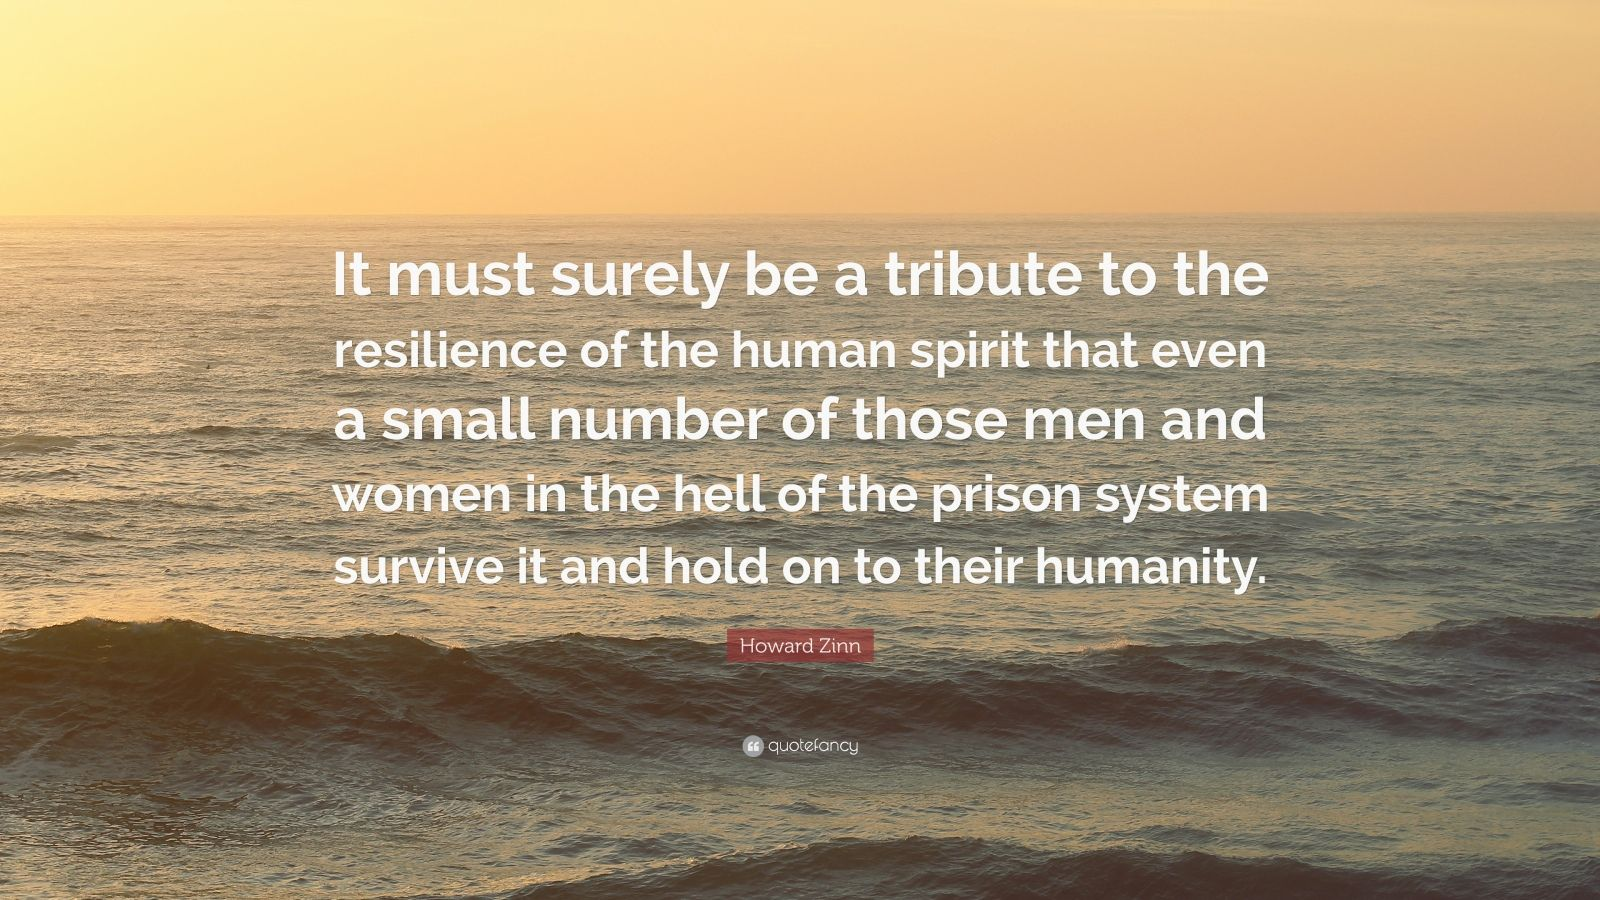 """Howard Zinn Quote: """"It must surely be a tribute to the resilience of the human spirit that even a small number of those men and women in the hell of the prison system survive it and hold on to their humanity."""""""